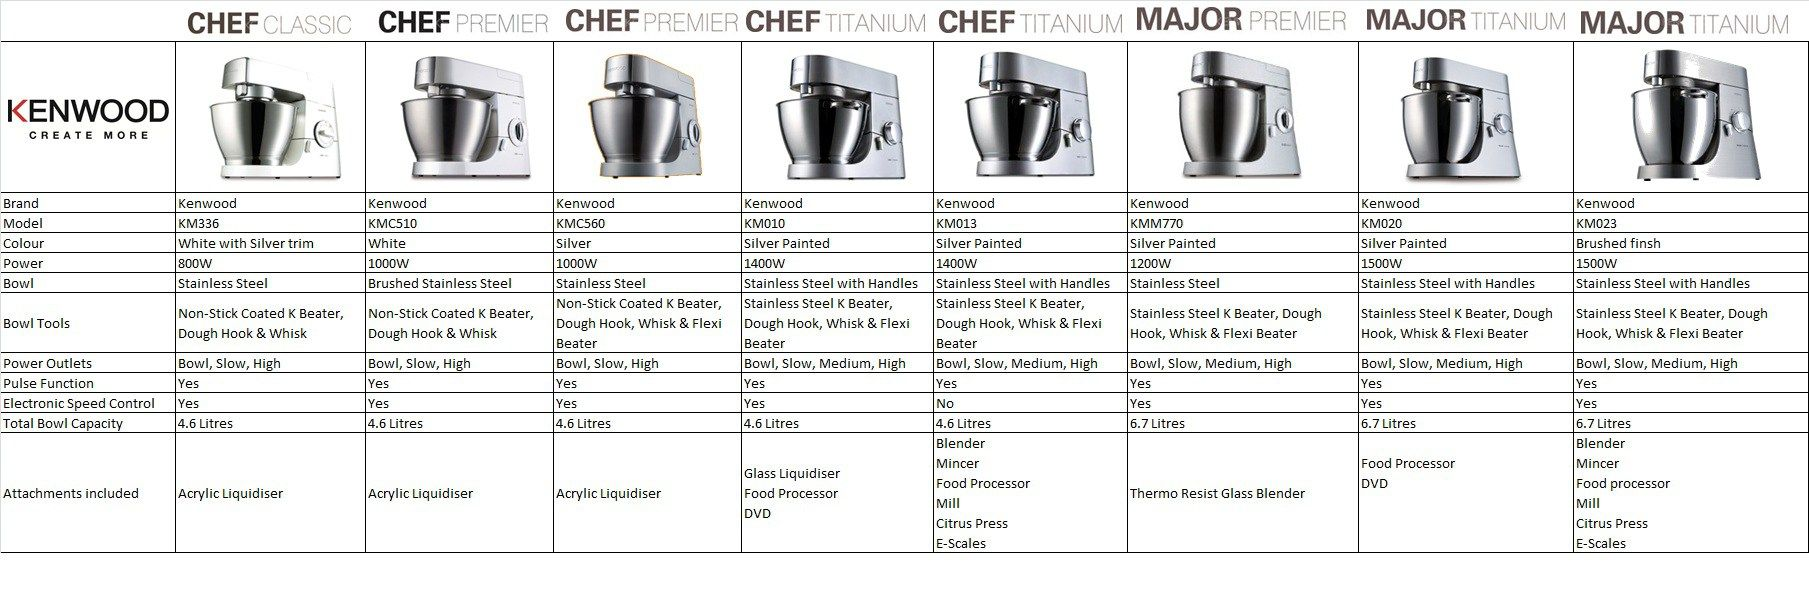 kenwood chef major comparison chart click larger image kitchen aid ...